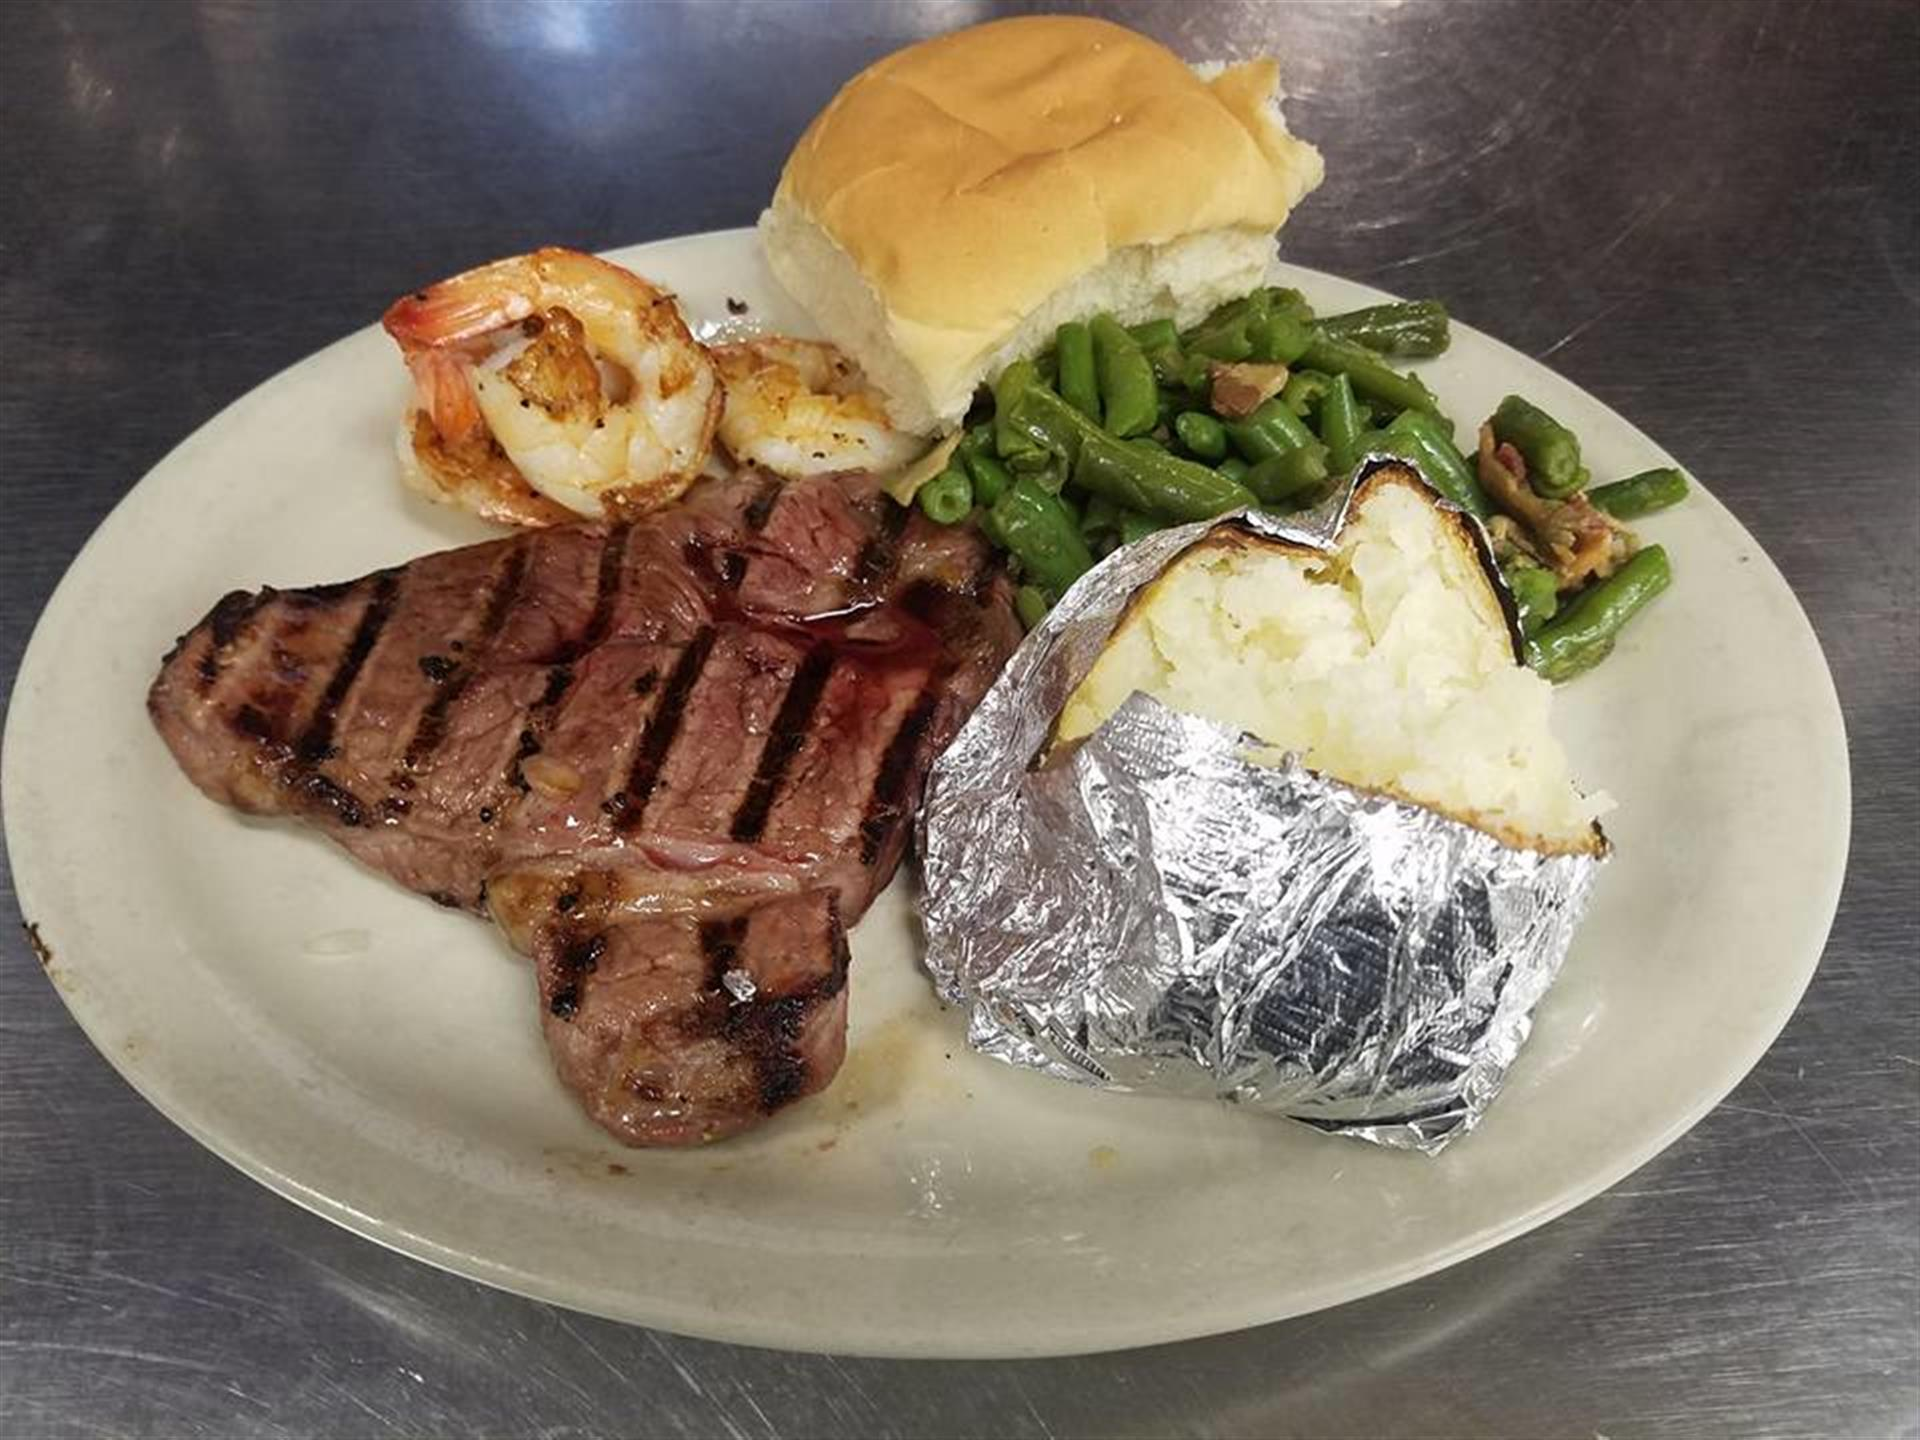 steak with green beans, baked potato in tin foil, shrimp, and roll